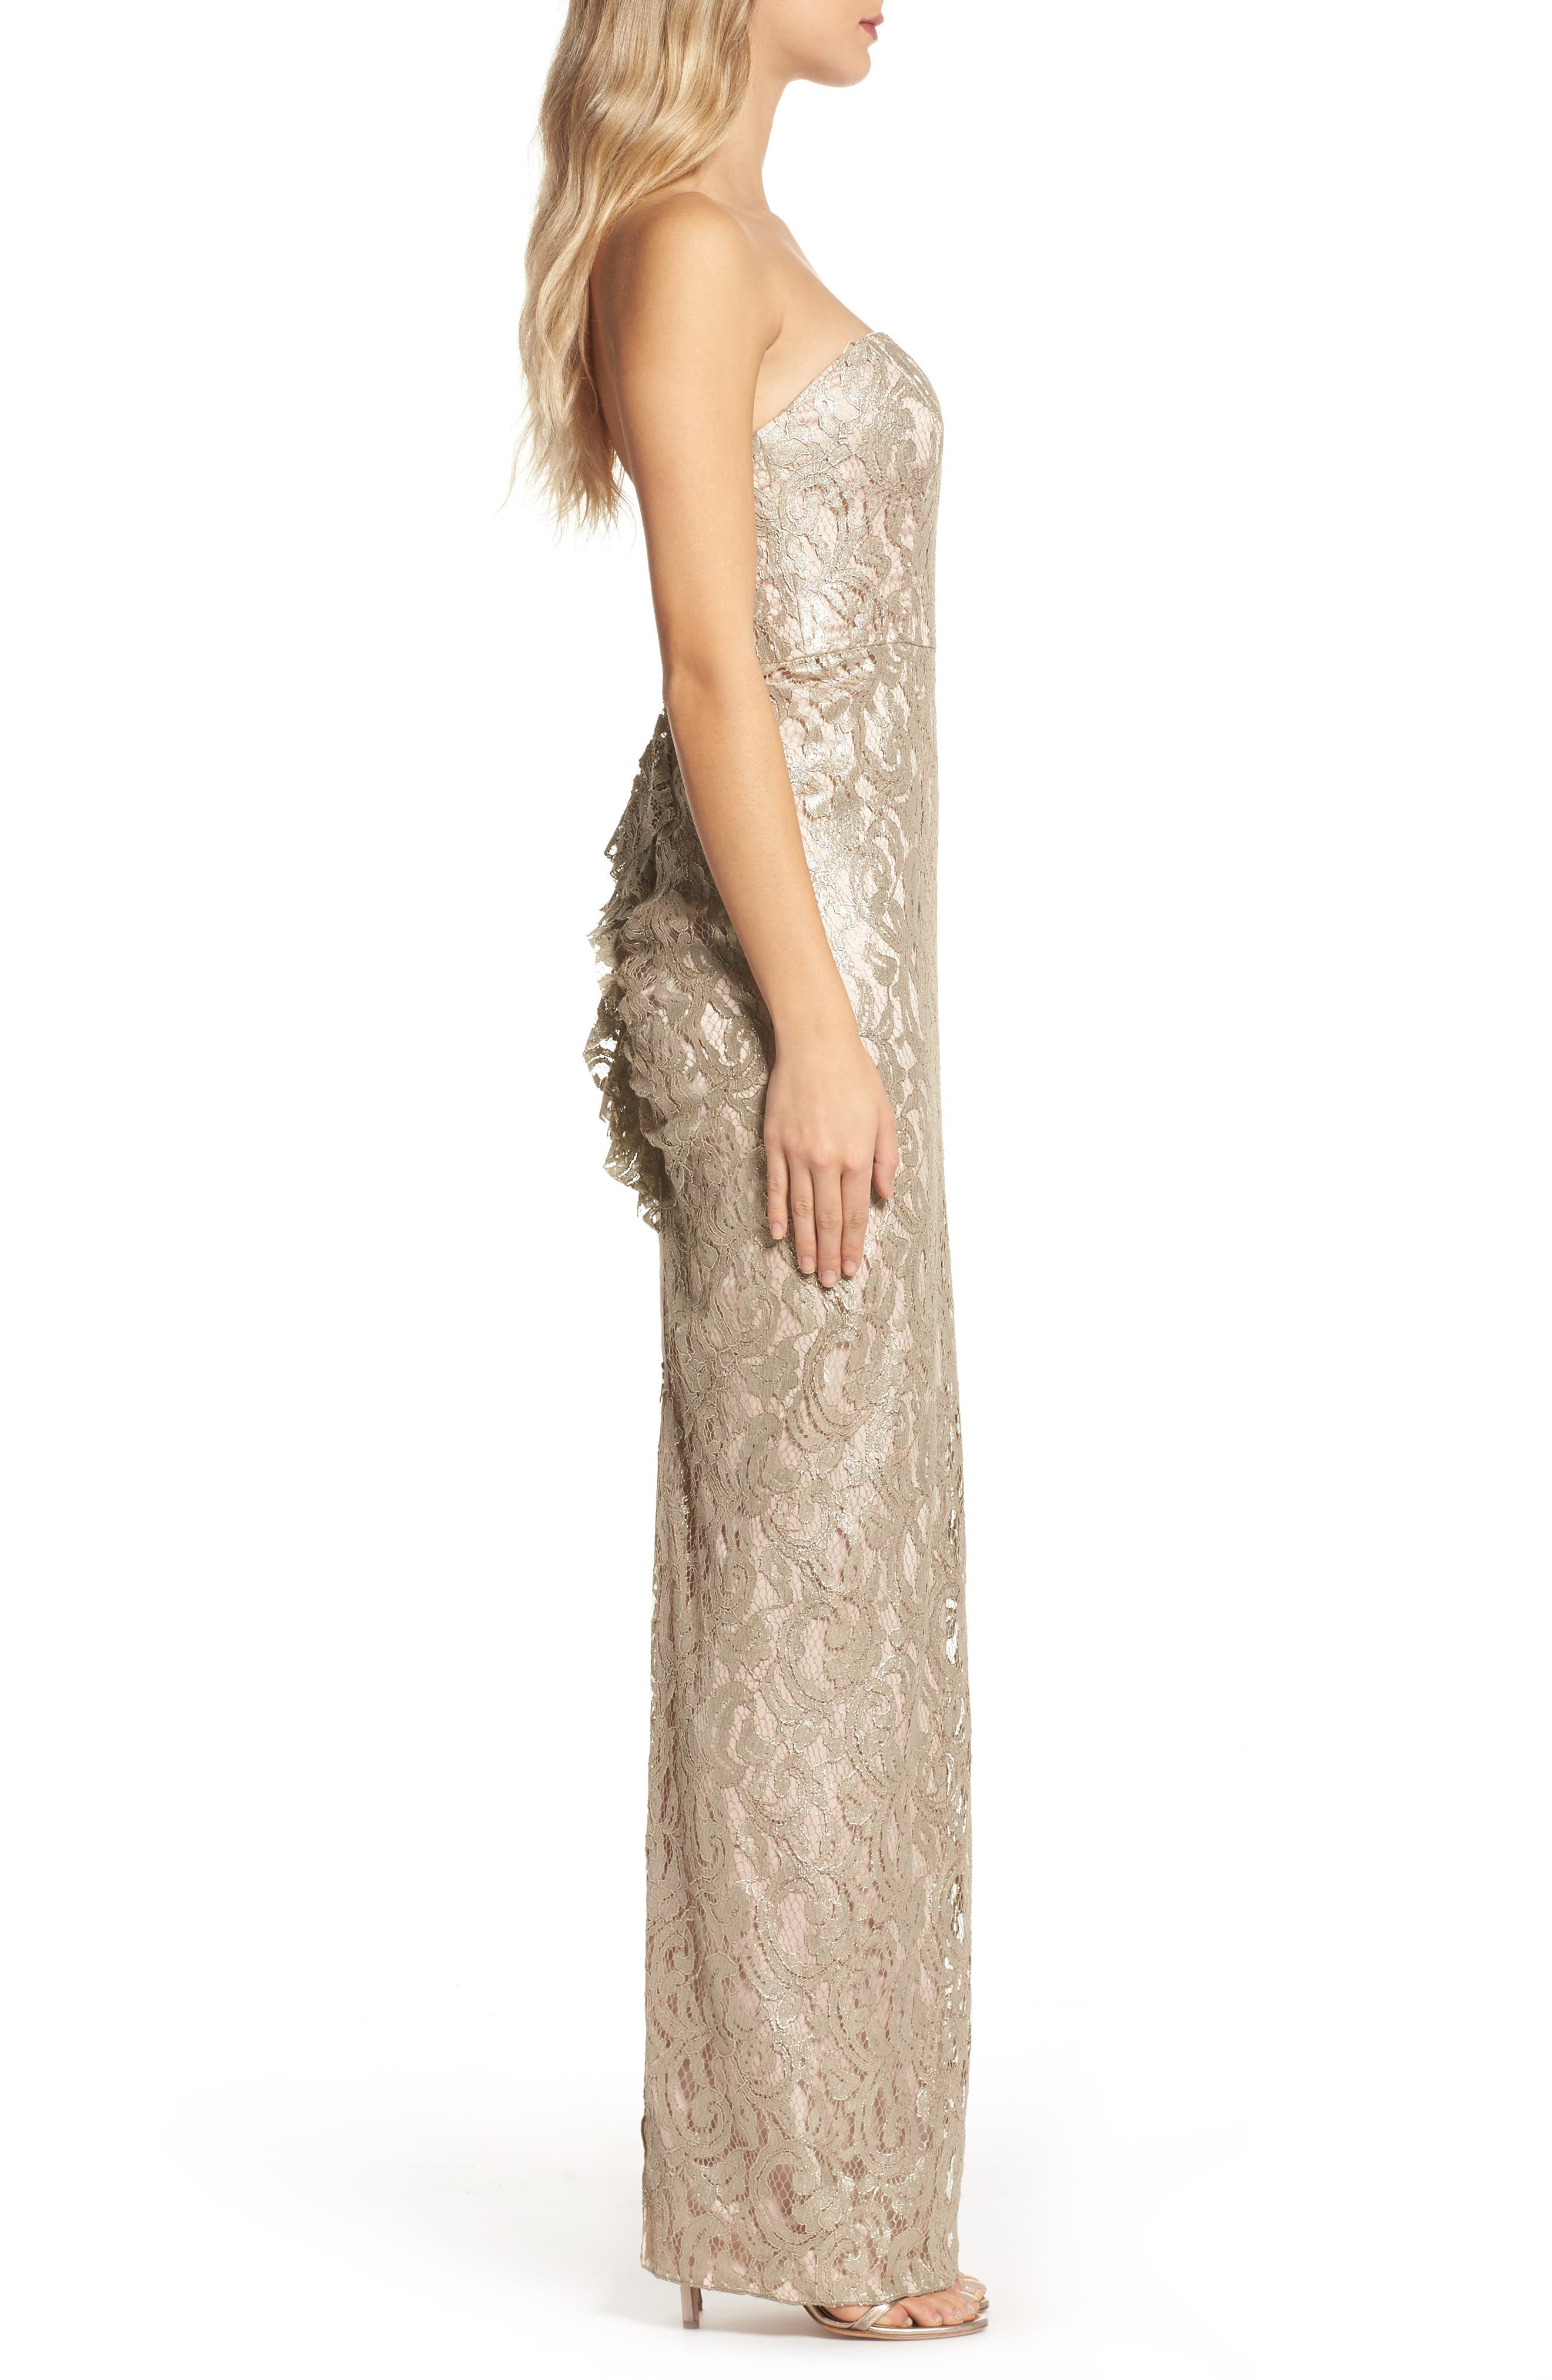 Starla Ruffle Back Strapless Lace Gown,                             Alternate thumbnail 3, color,                             Gold